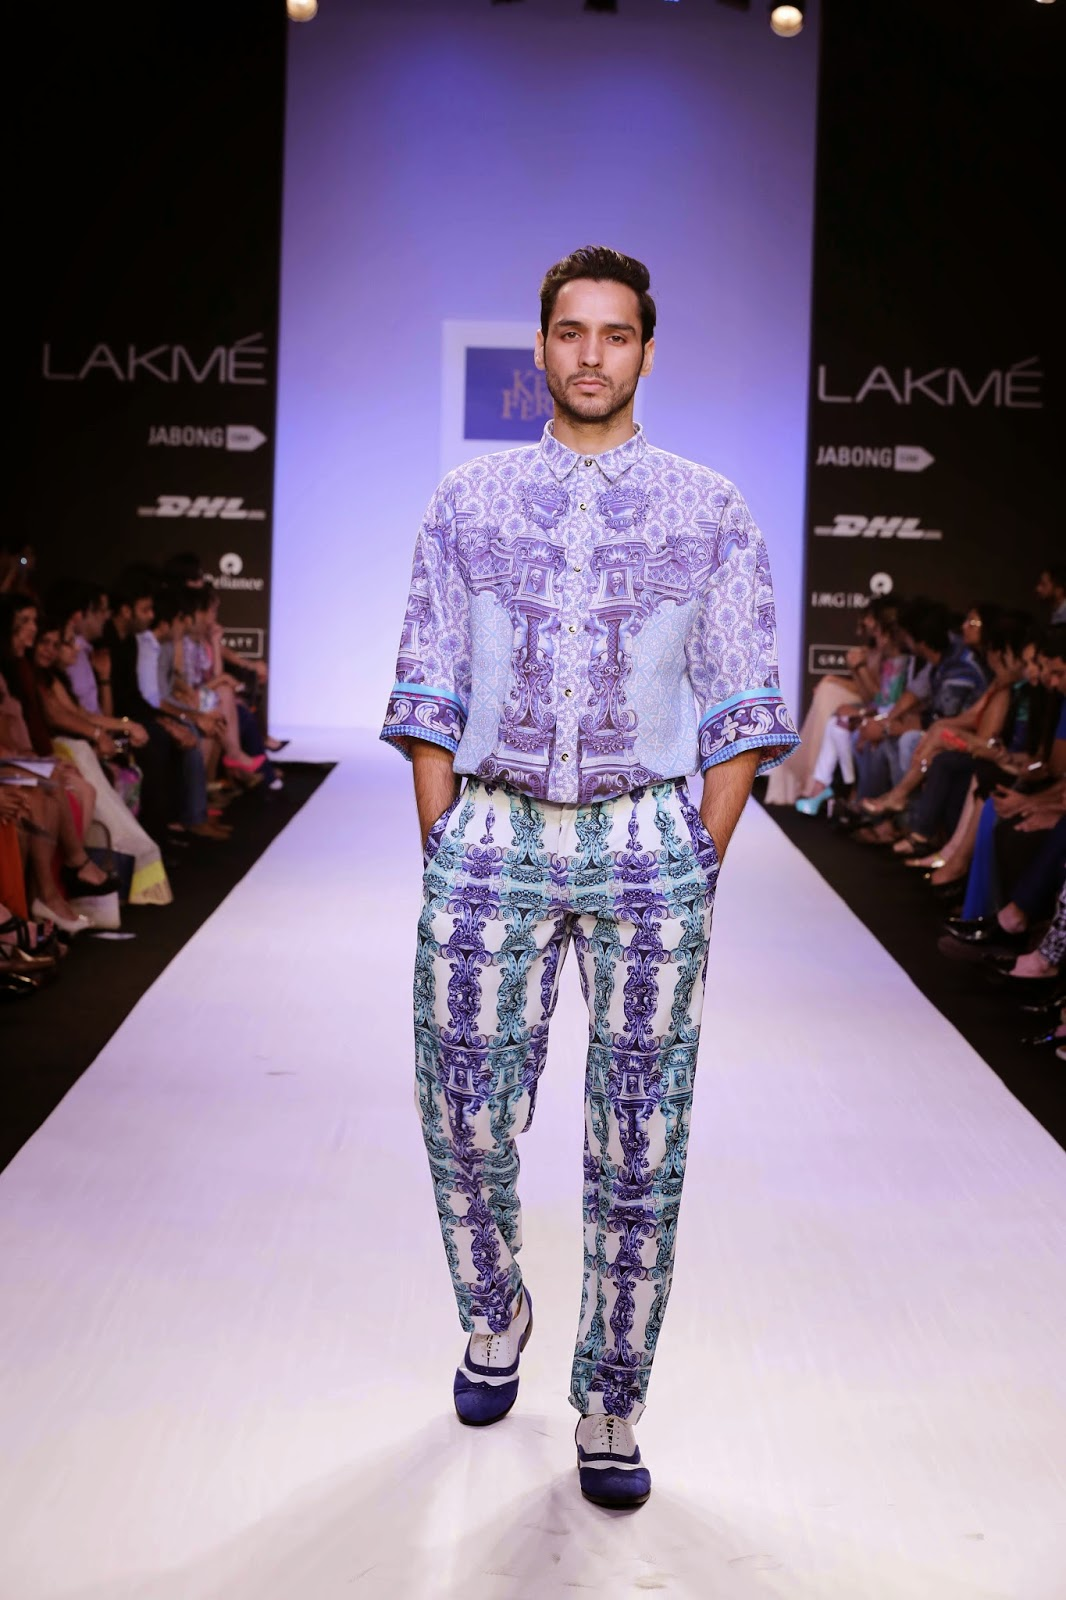 Ken Ferns has been inspired by unconventional themes in the past, so little wonder that this time it was interesting to note how the Golden Age of the Azulejos form of Portuguese art of painted ceramic tiles was the basis of his collection for Lakmé Fashion Week Summer/Resort 2014.